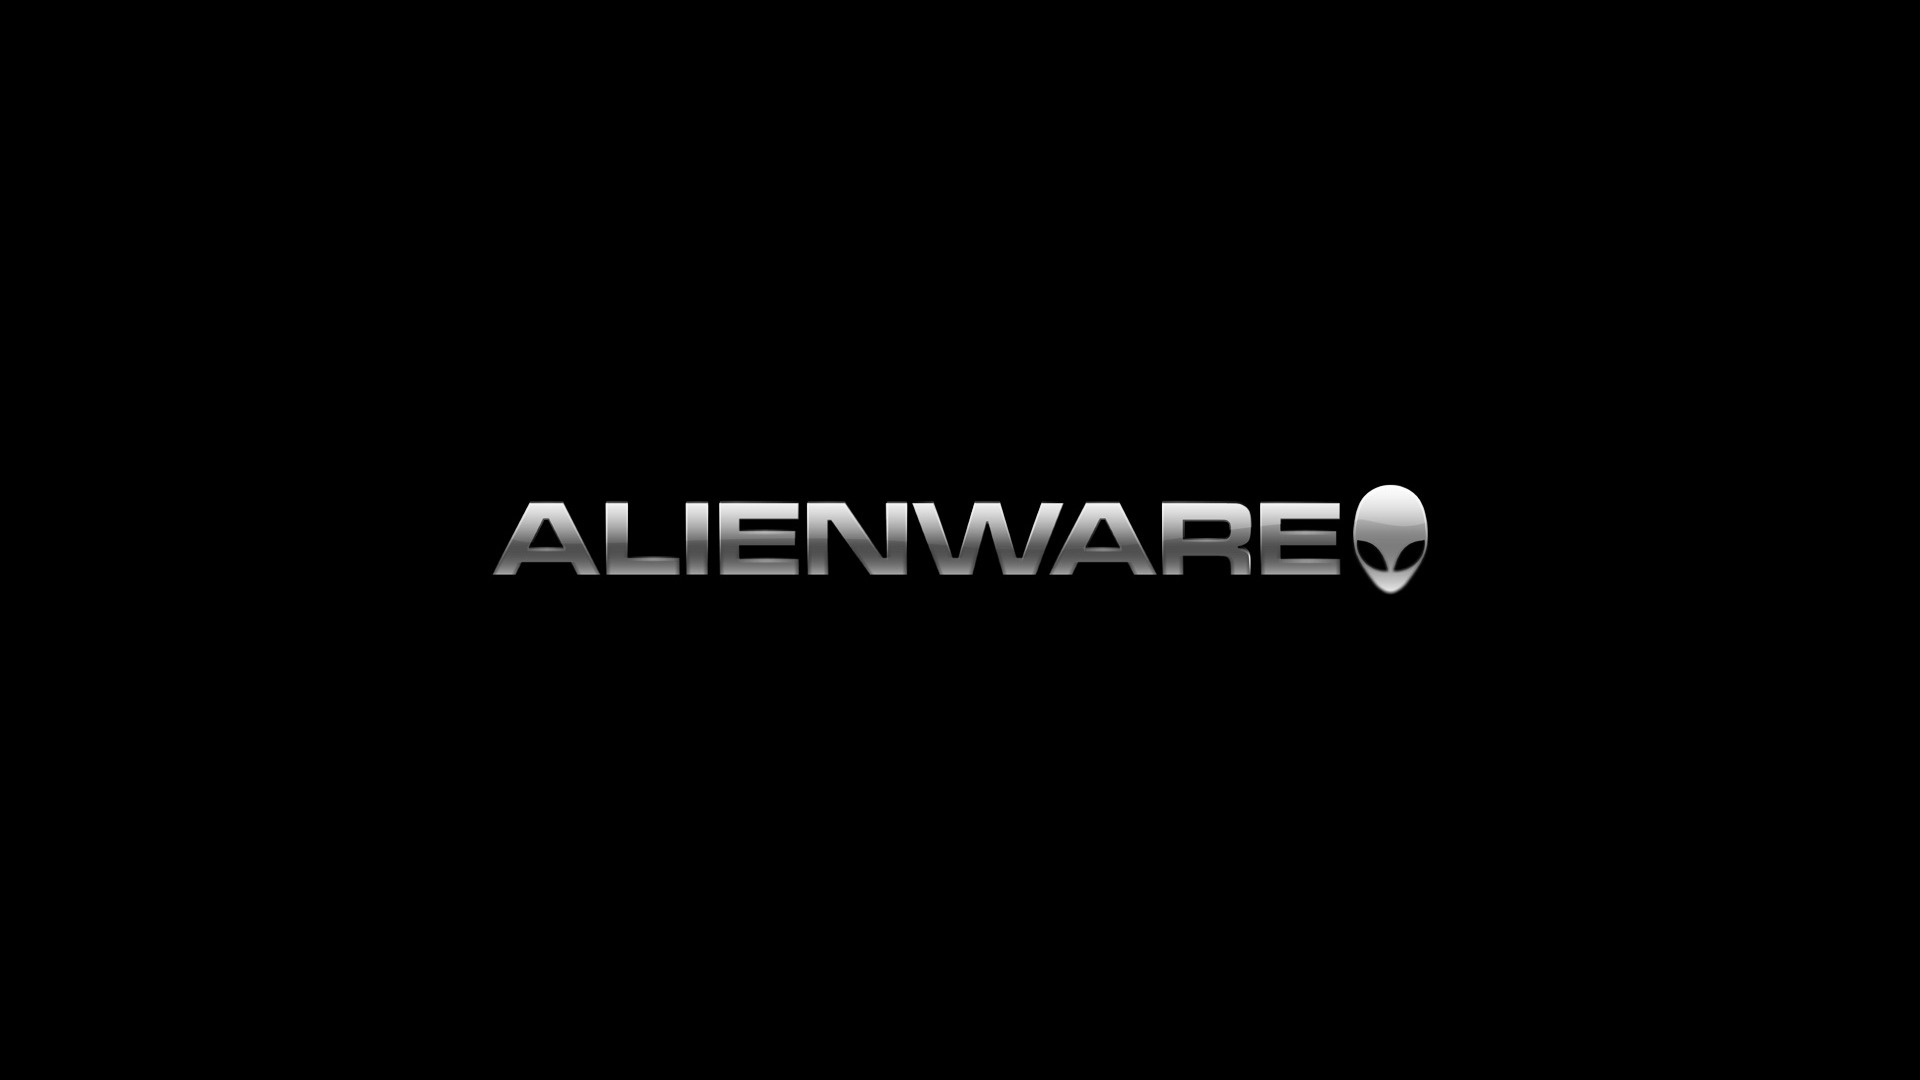 Cute Alien Computer Wallpapers Alienware Logo Hd Computer 4k Wallpapers Images